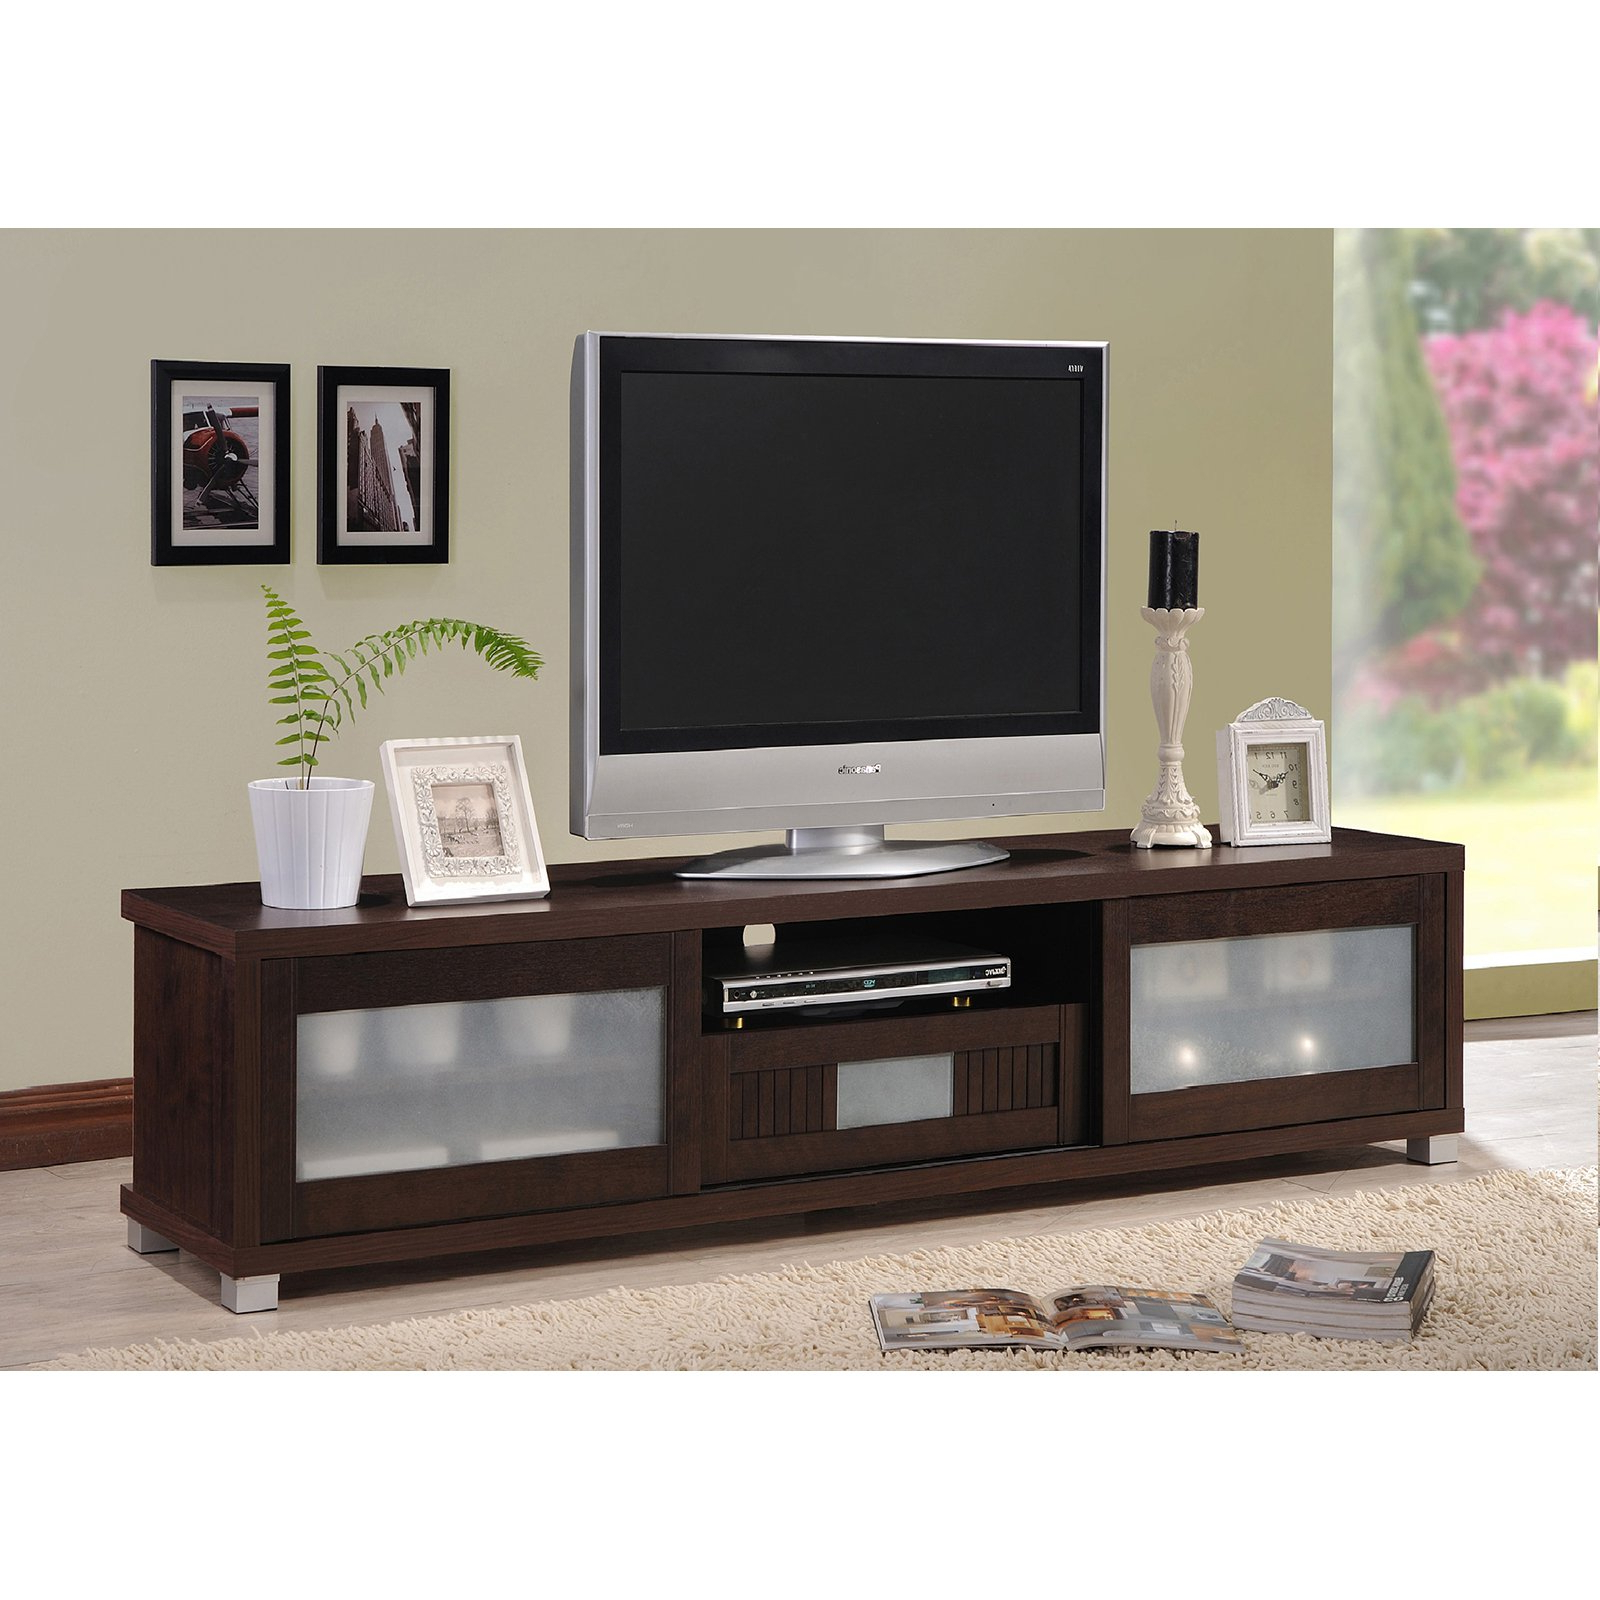 Baxton Studio Gerhardine Dark Brown Wood 70 Inch Tv Cabinet With 2 Inside Most Up To Date Wenge Tv Cabinets (View 10 of 20)